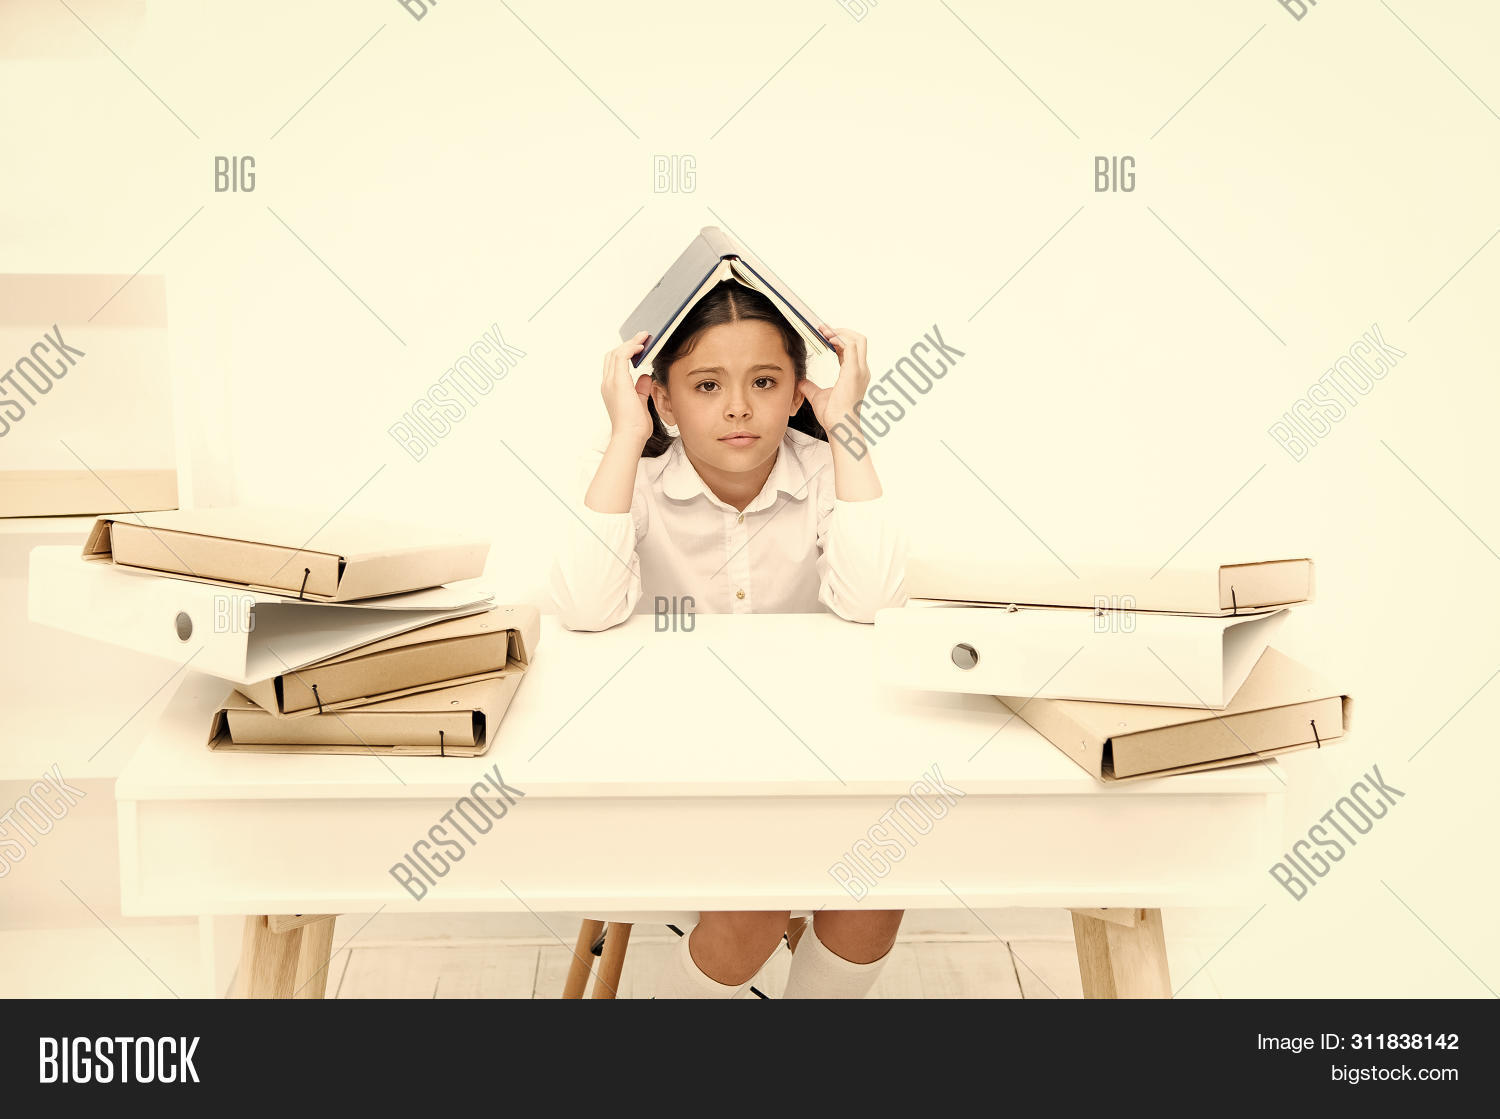 Back to school concept. Kid cute tired of studying. Boring lesson. Boring task homework. Get rid of boring task. Girl bored pupil sit at desk with folders and books. Issues of formal education.